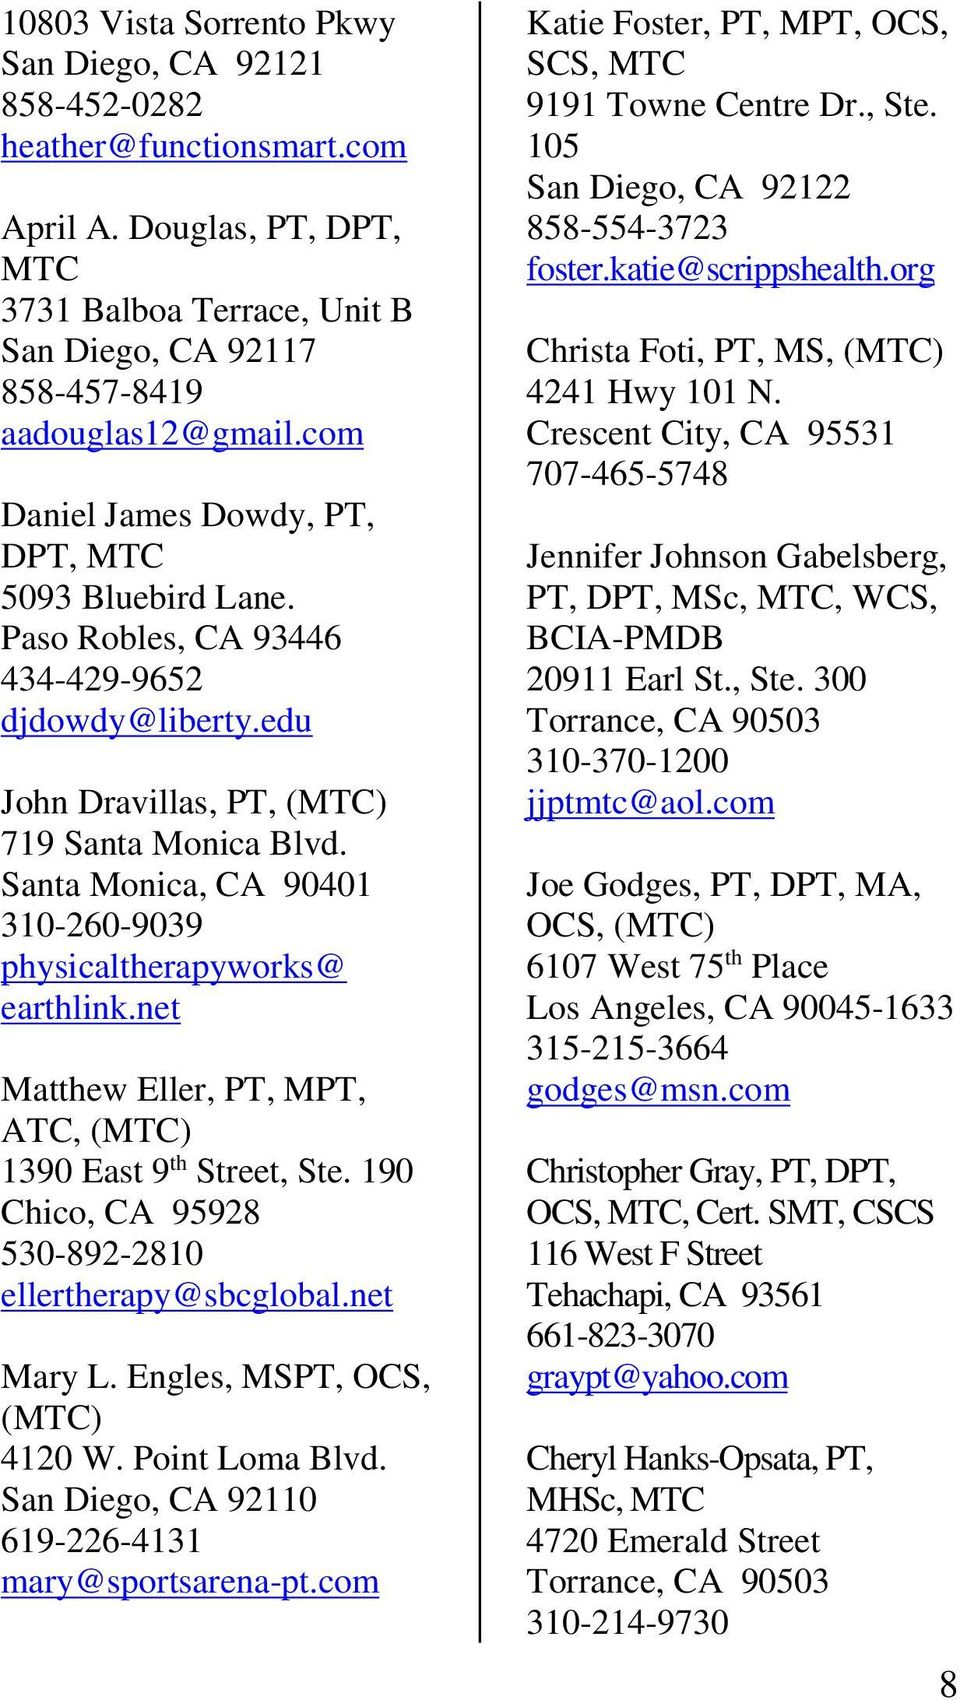 Institute of Physical Therapy  Certification List - PDF